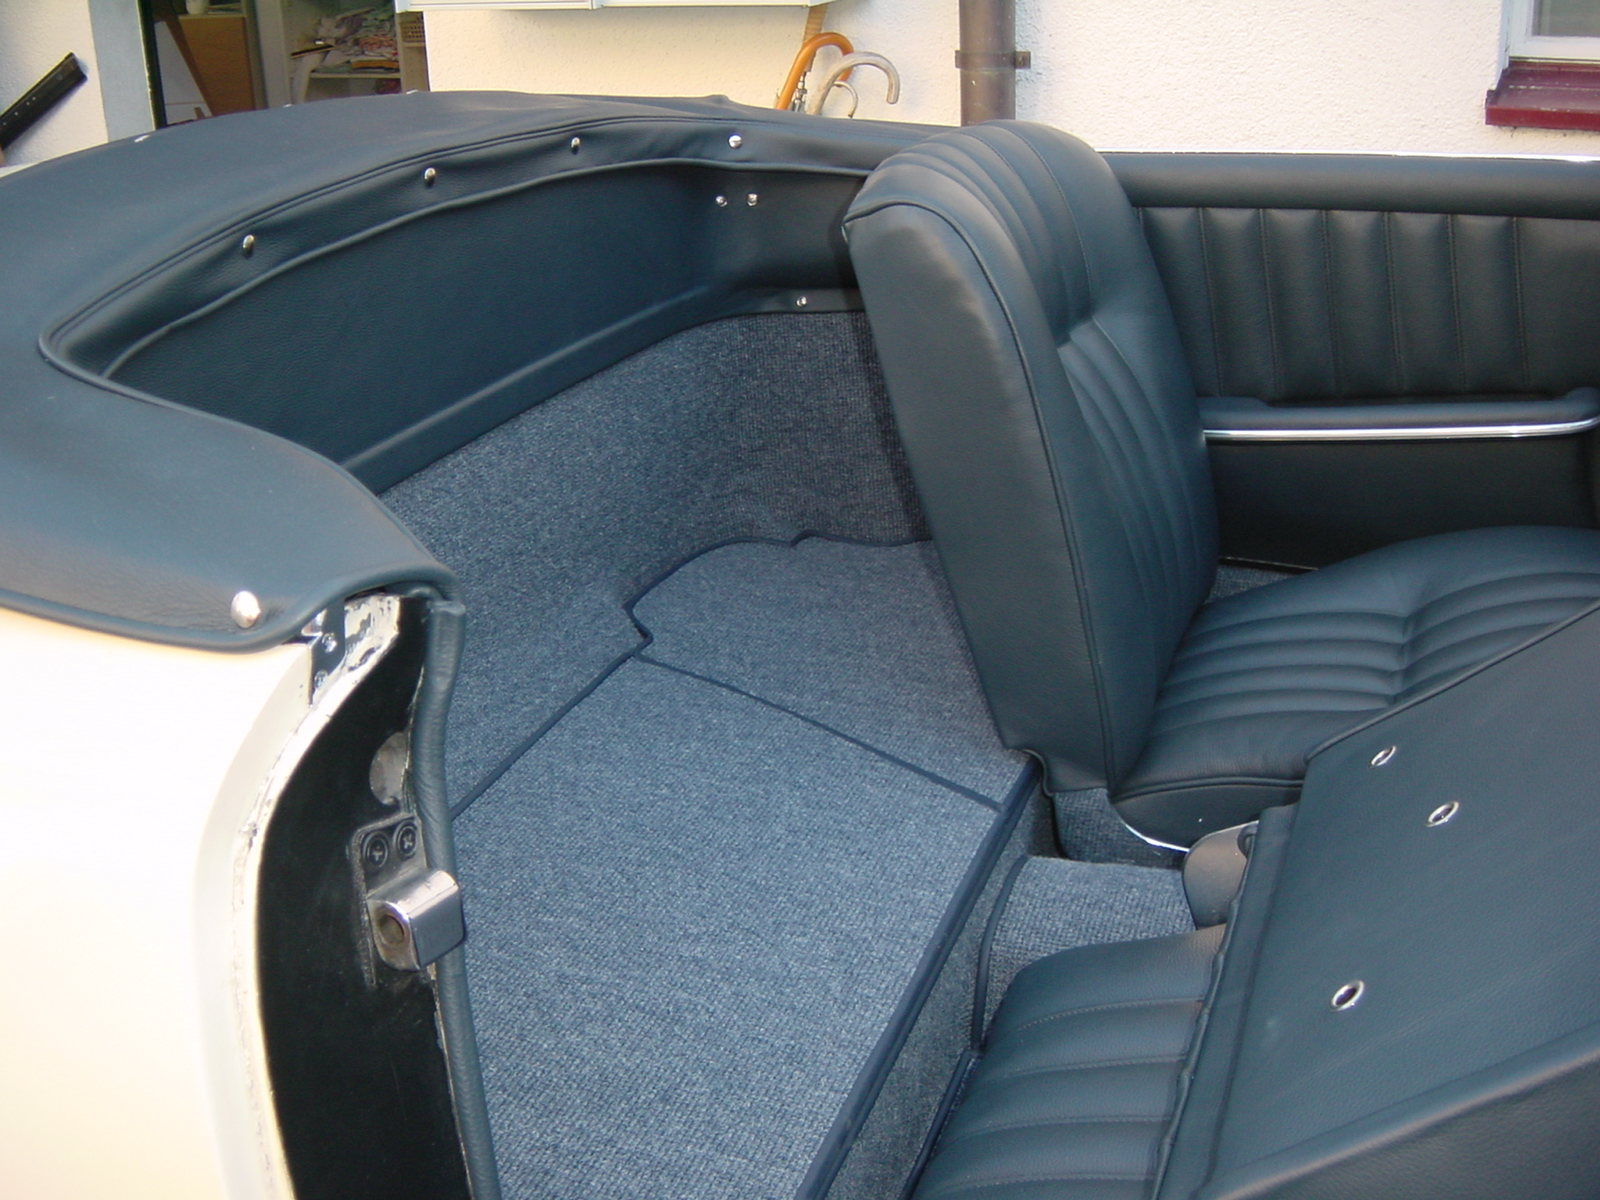 Mercedes 190 sl mit lederinterieur for Interieur mercedes 190